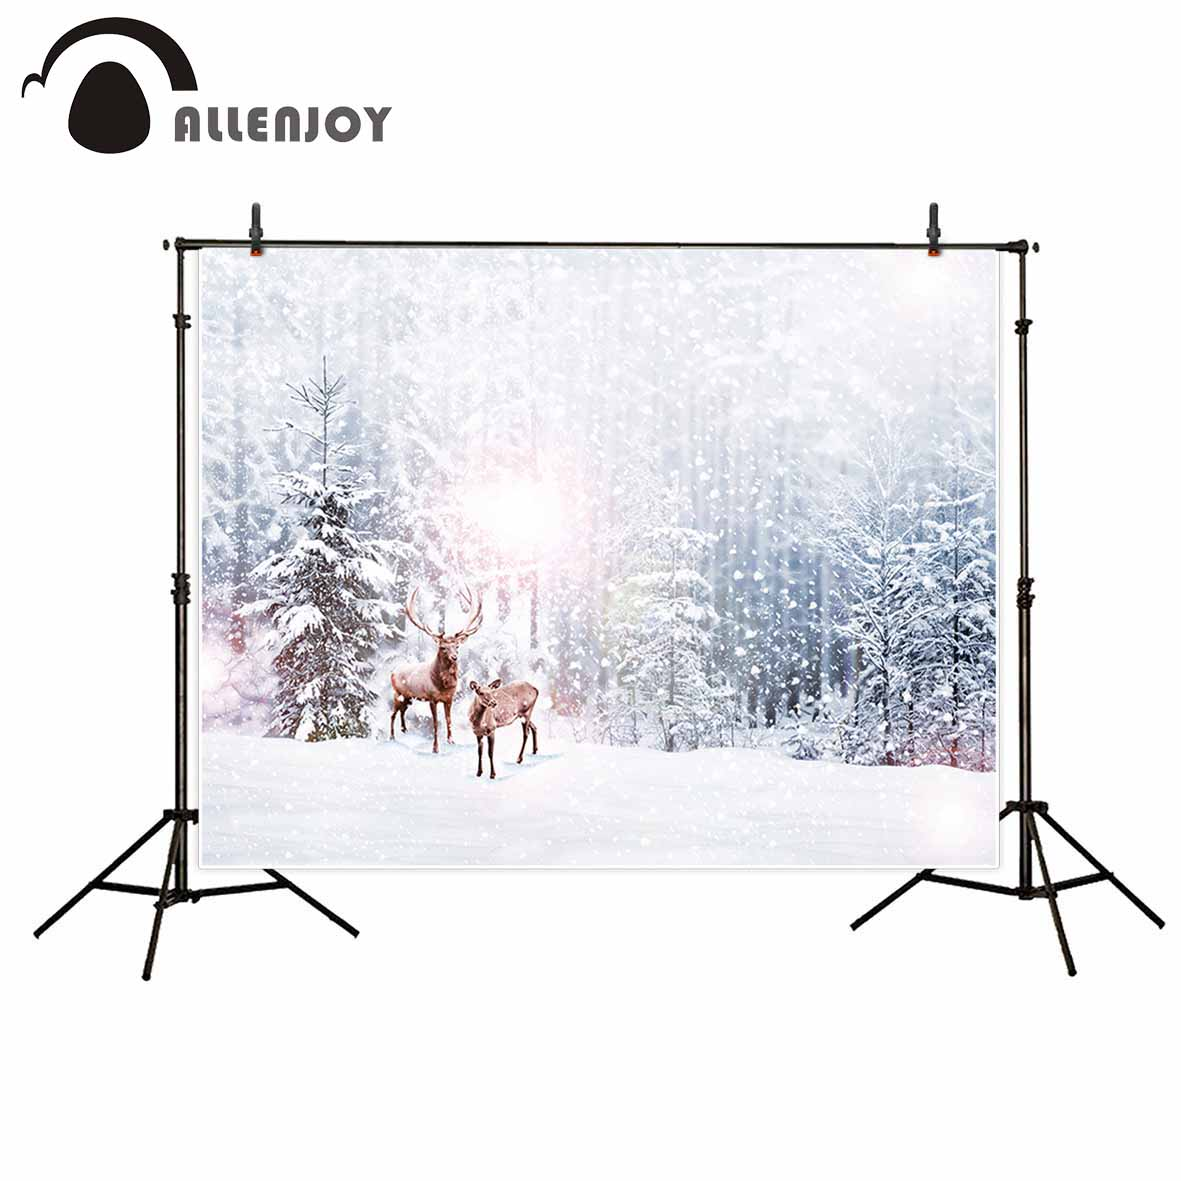 Allenjoy Winter background forest pine elk snow photography backdrops christmas decorations new backdrops photo studio 500g roll 0 6mm 500g 60 40 flux 2 0